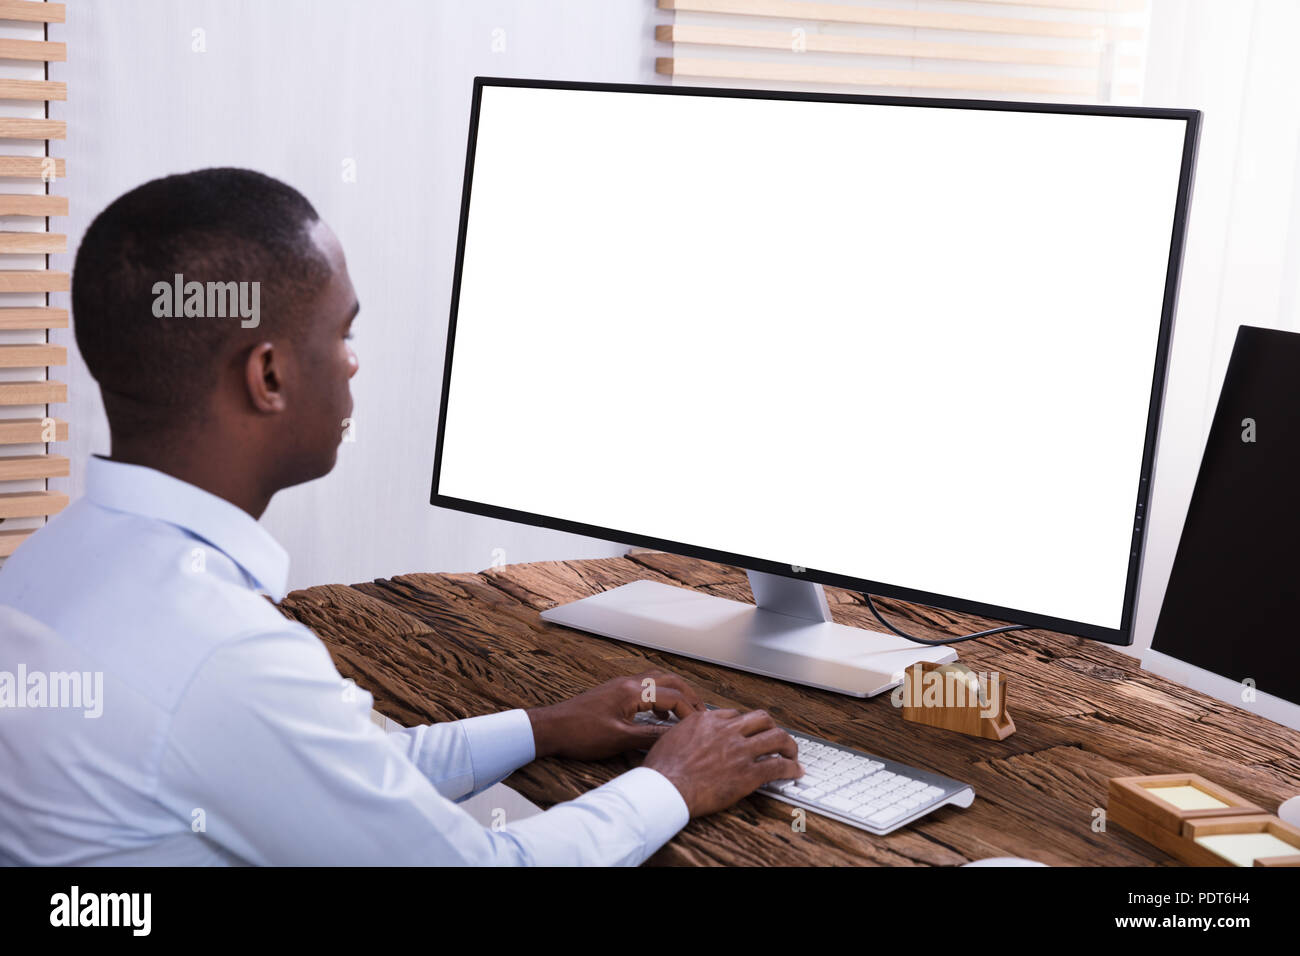 Close-up Of A Businessman Using Computer With Blank White Screen On The Wooden Desk - Stock Image